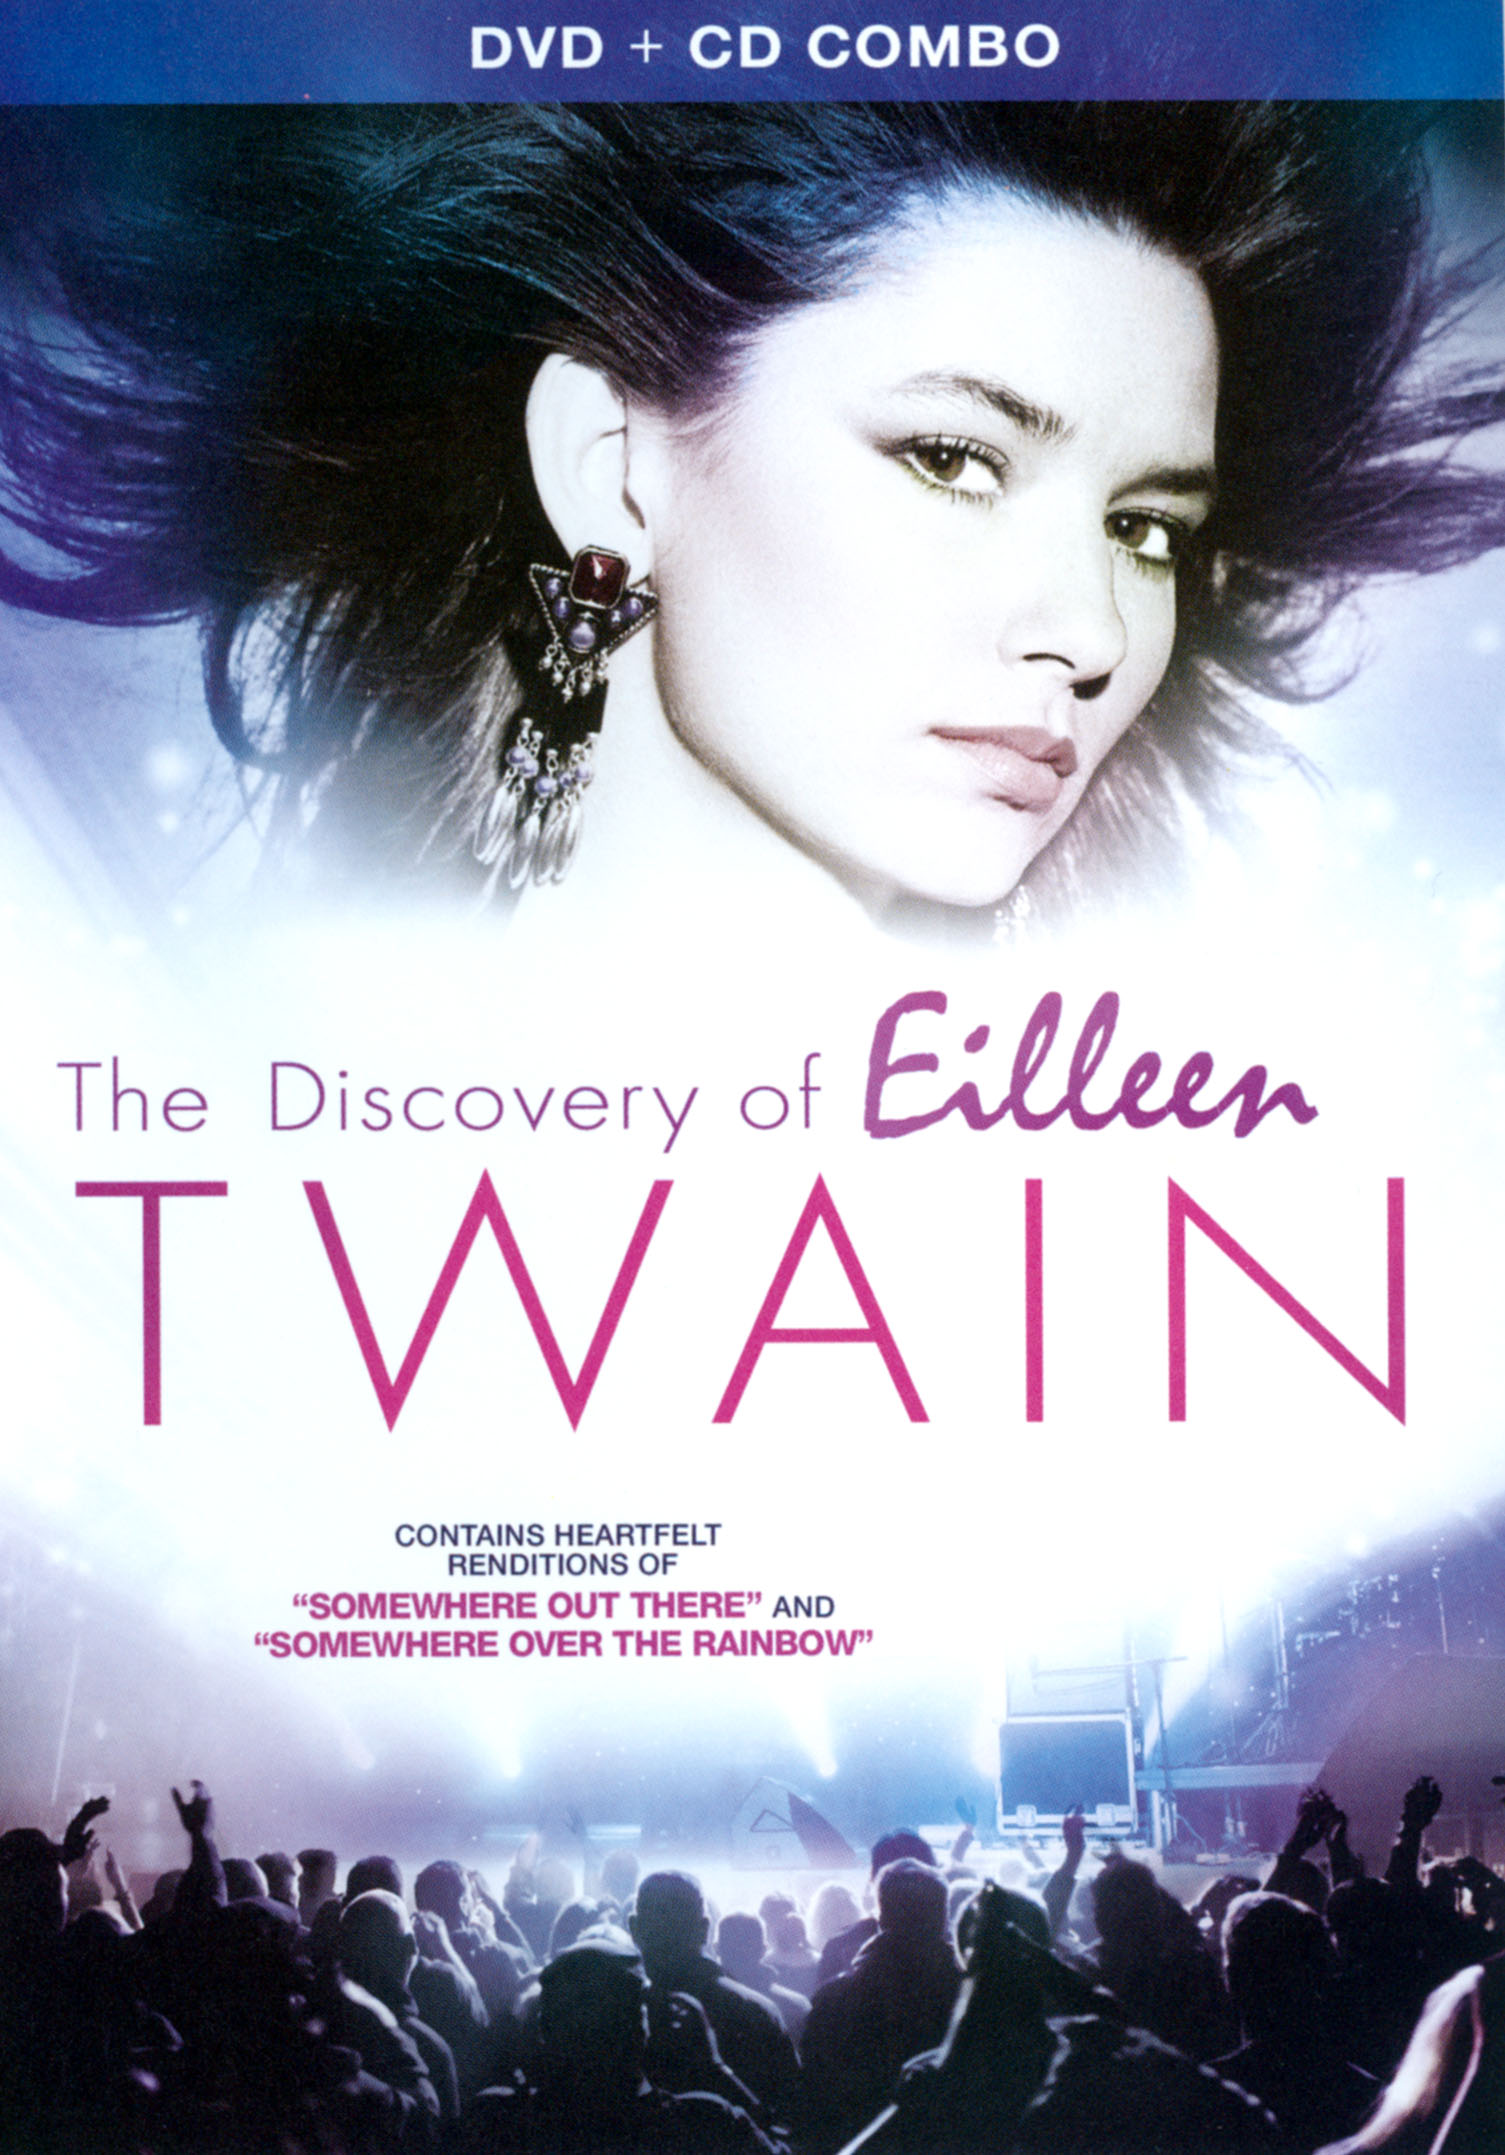 Shania: The Discovery of Eilleen Twain